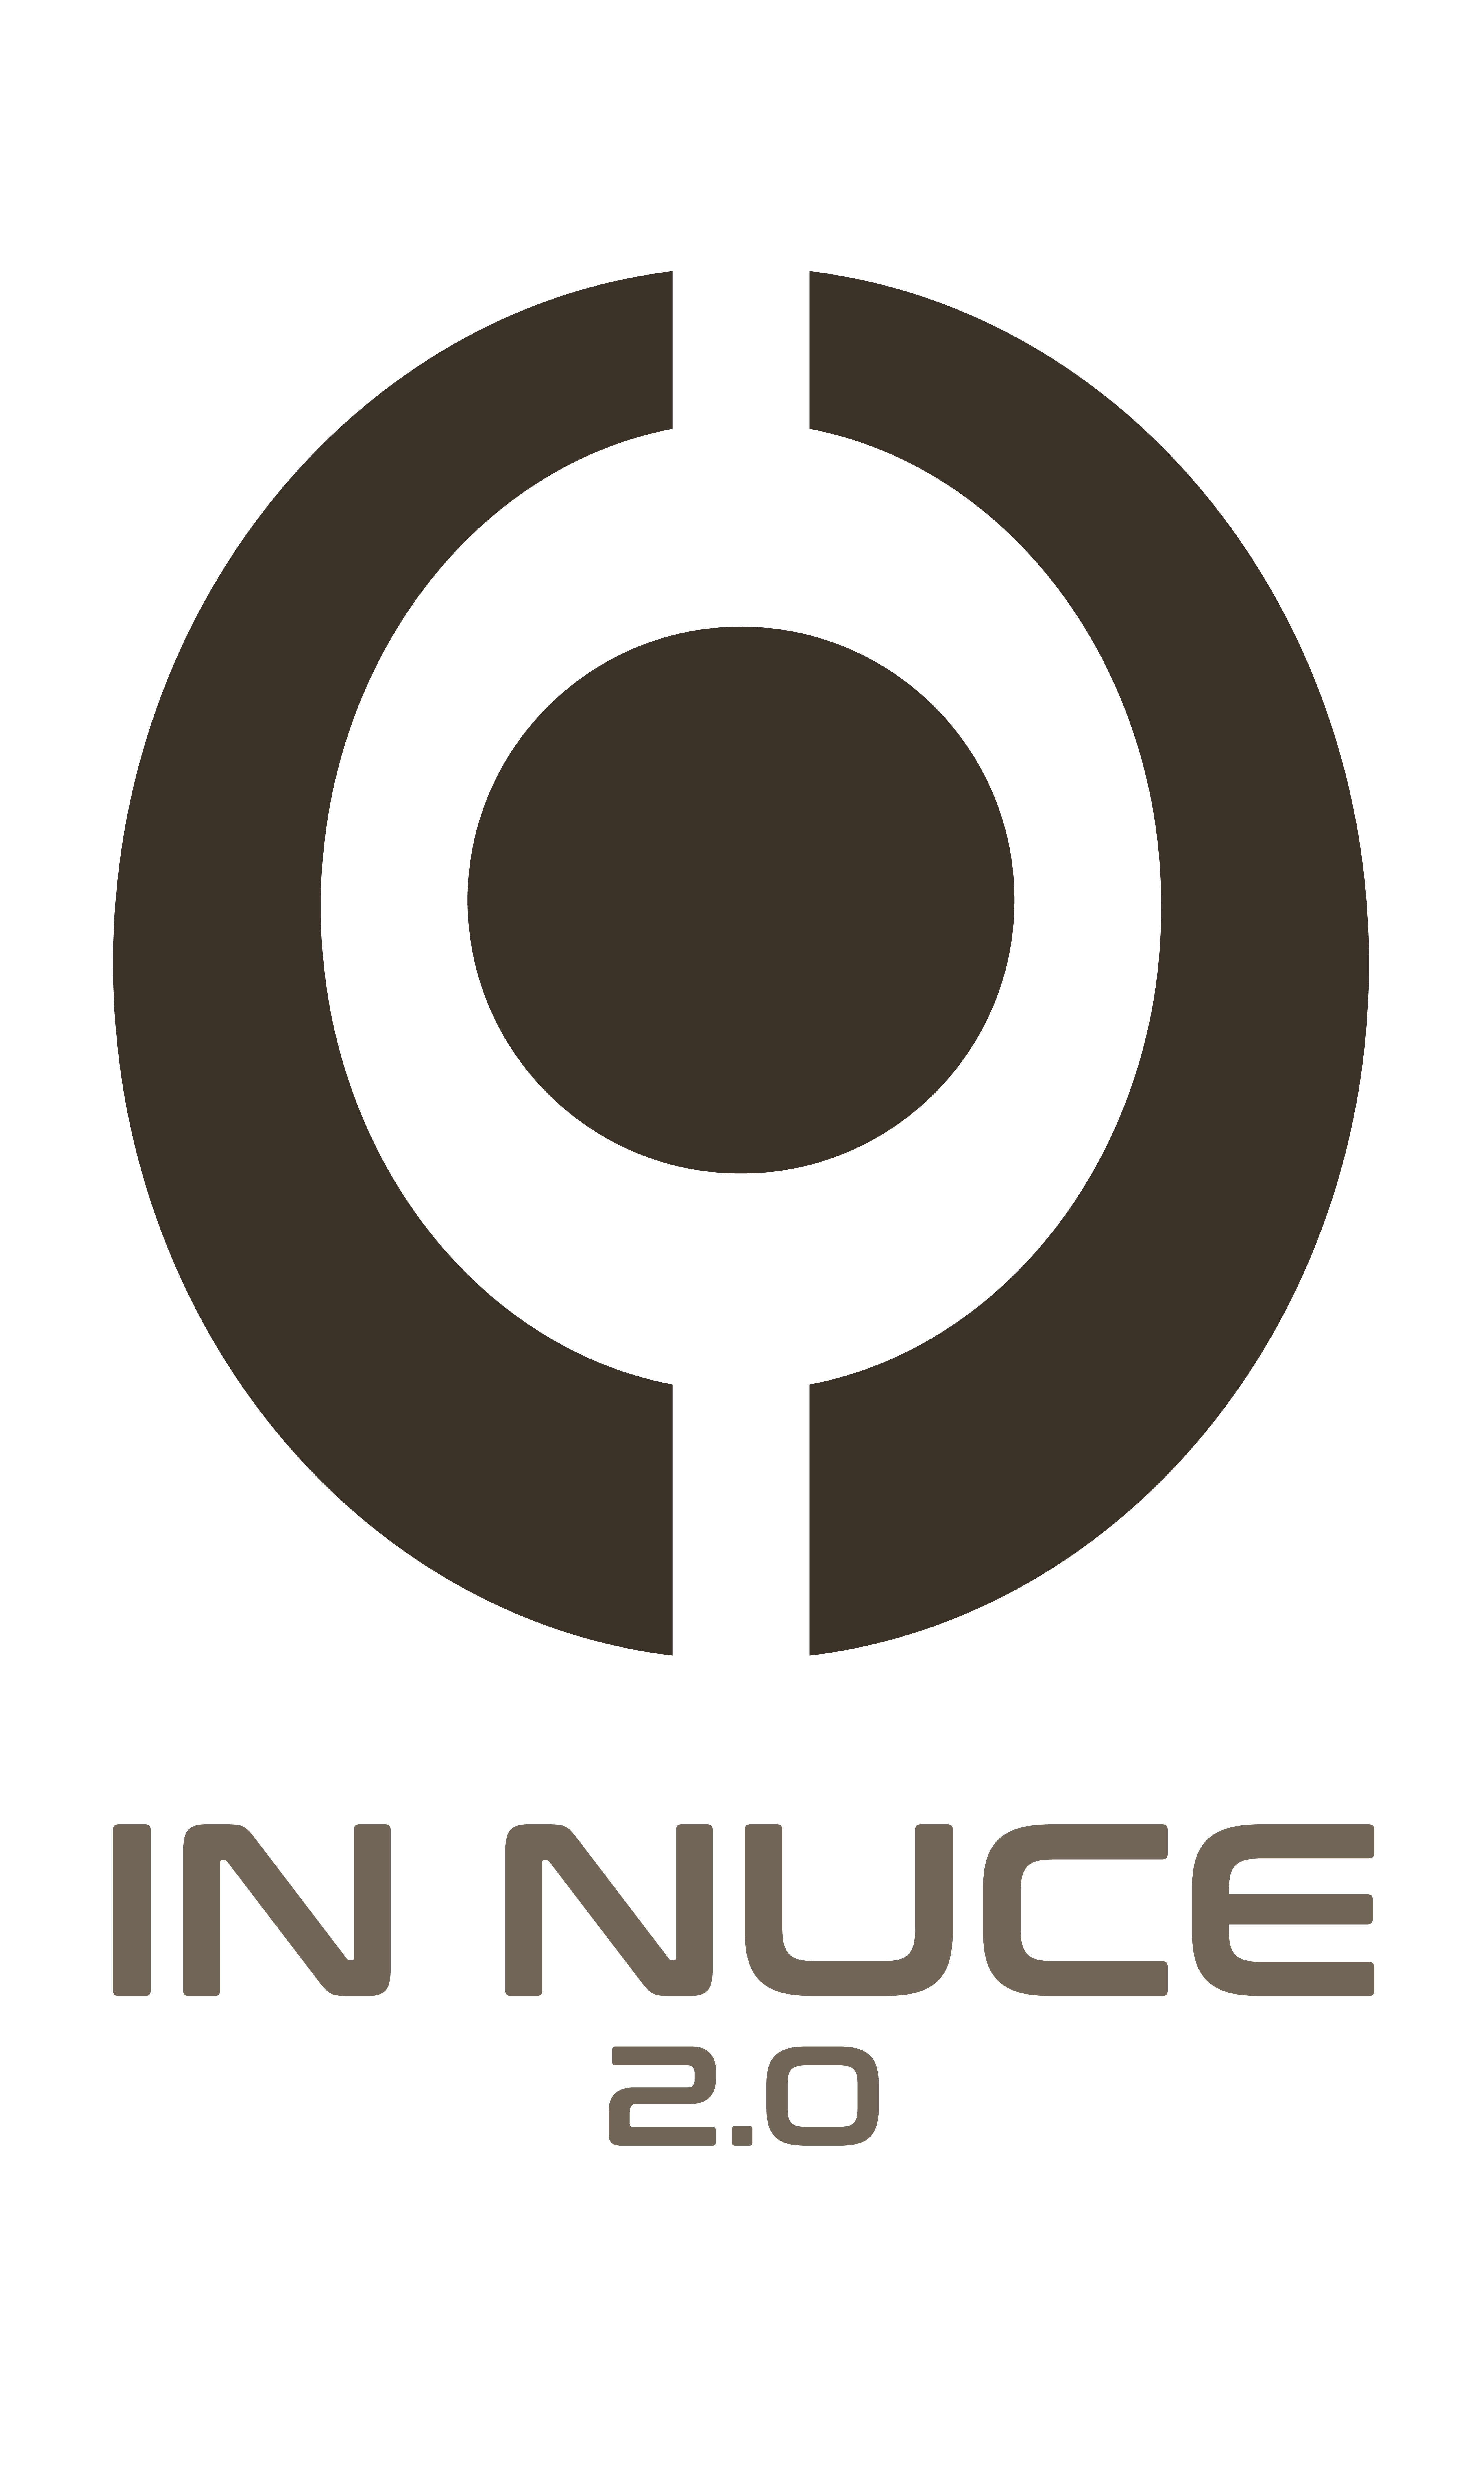 innuce_2_0_logo-19.png